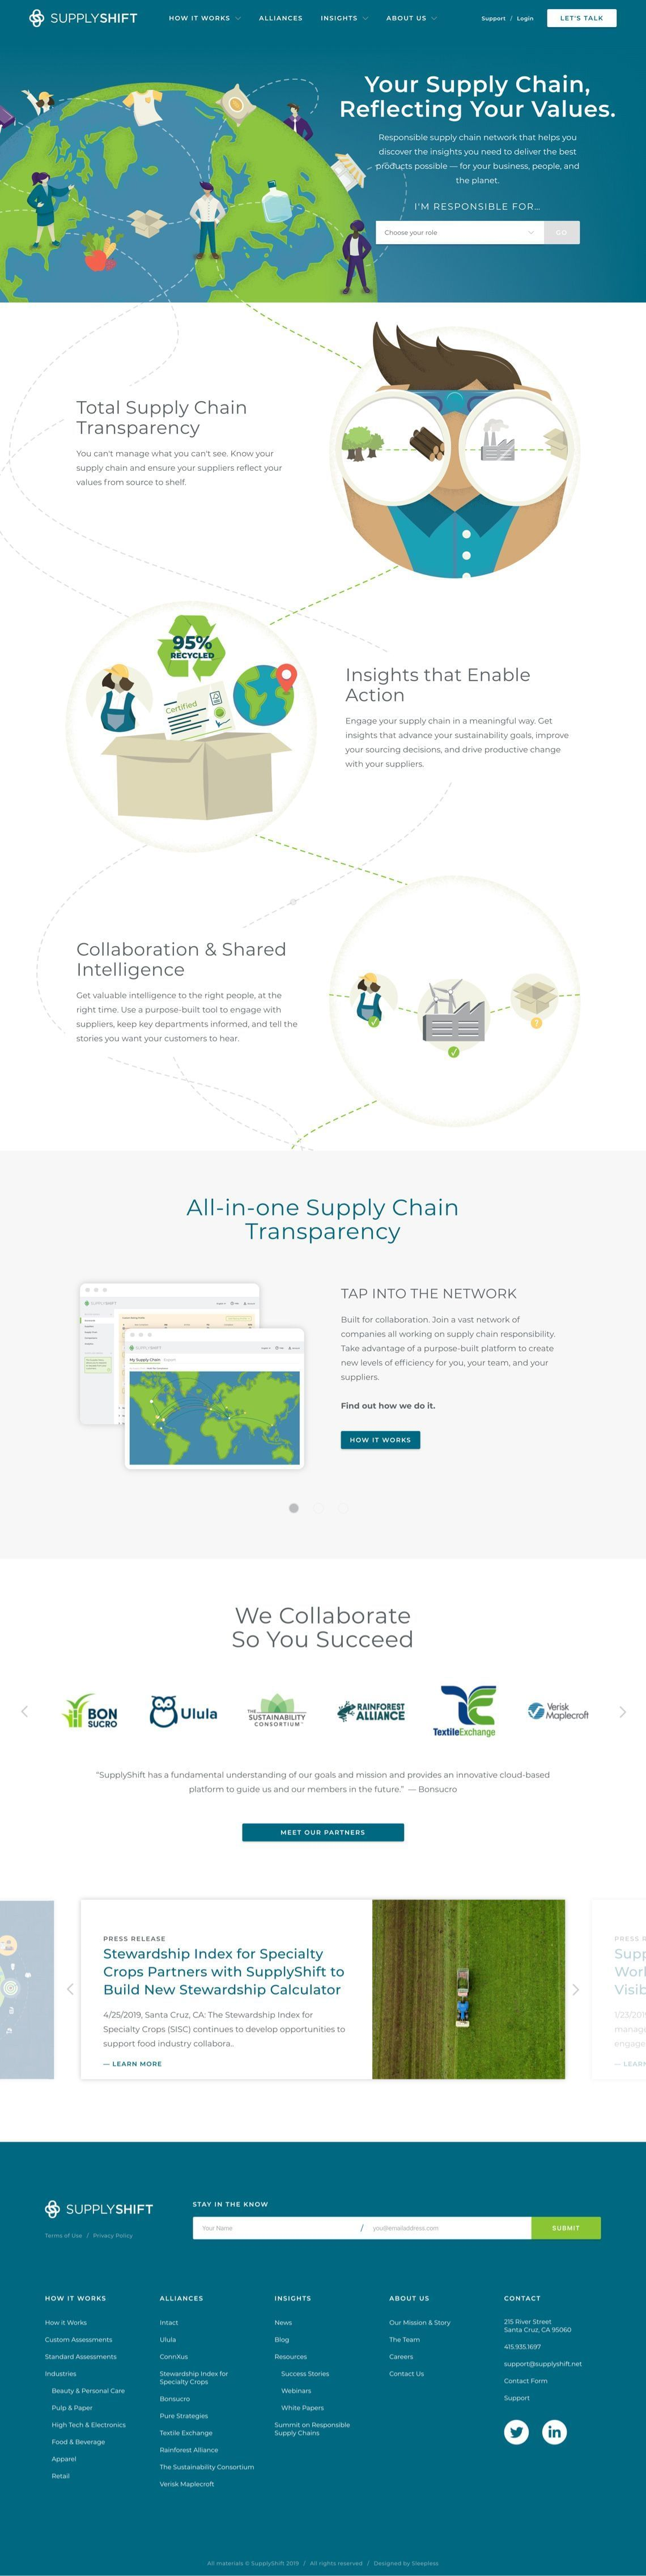 SupplyShift - Homepage